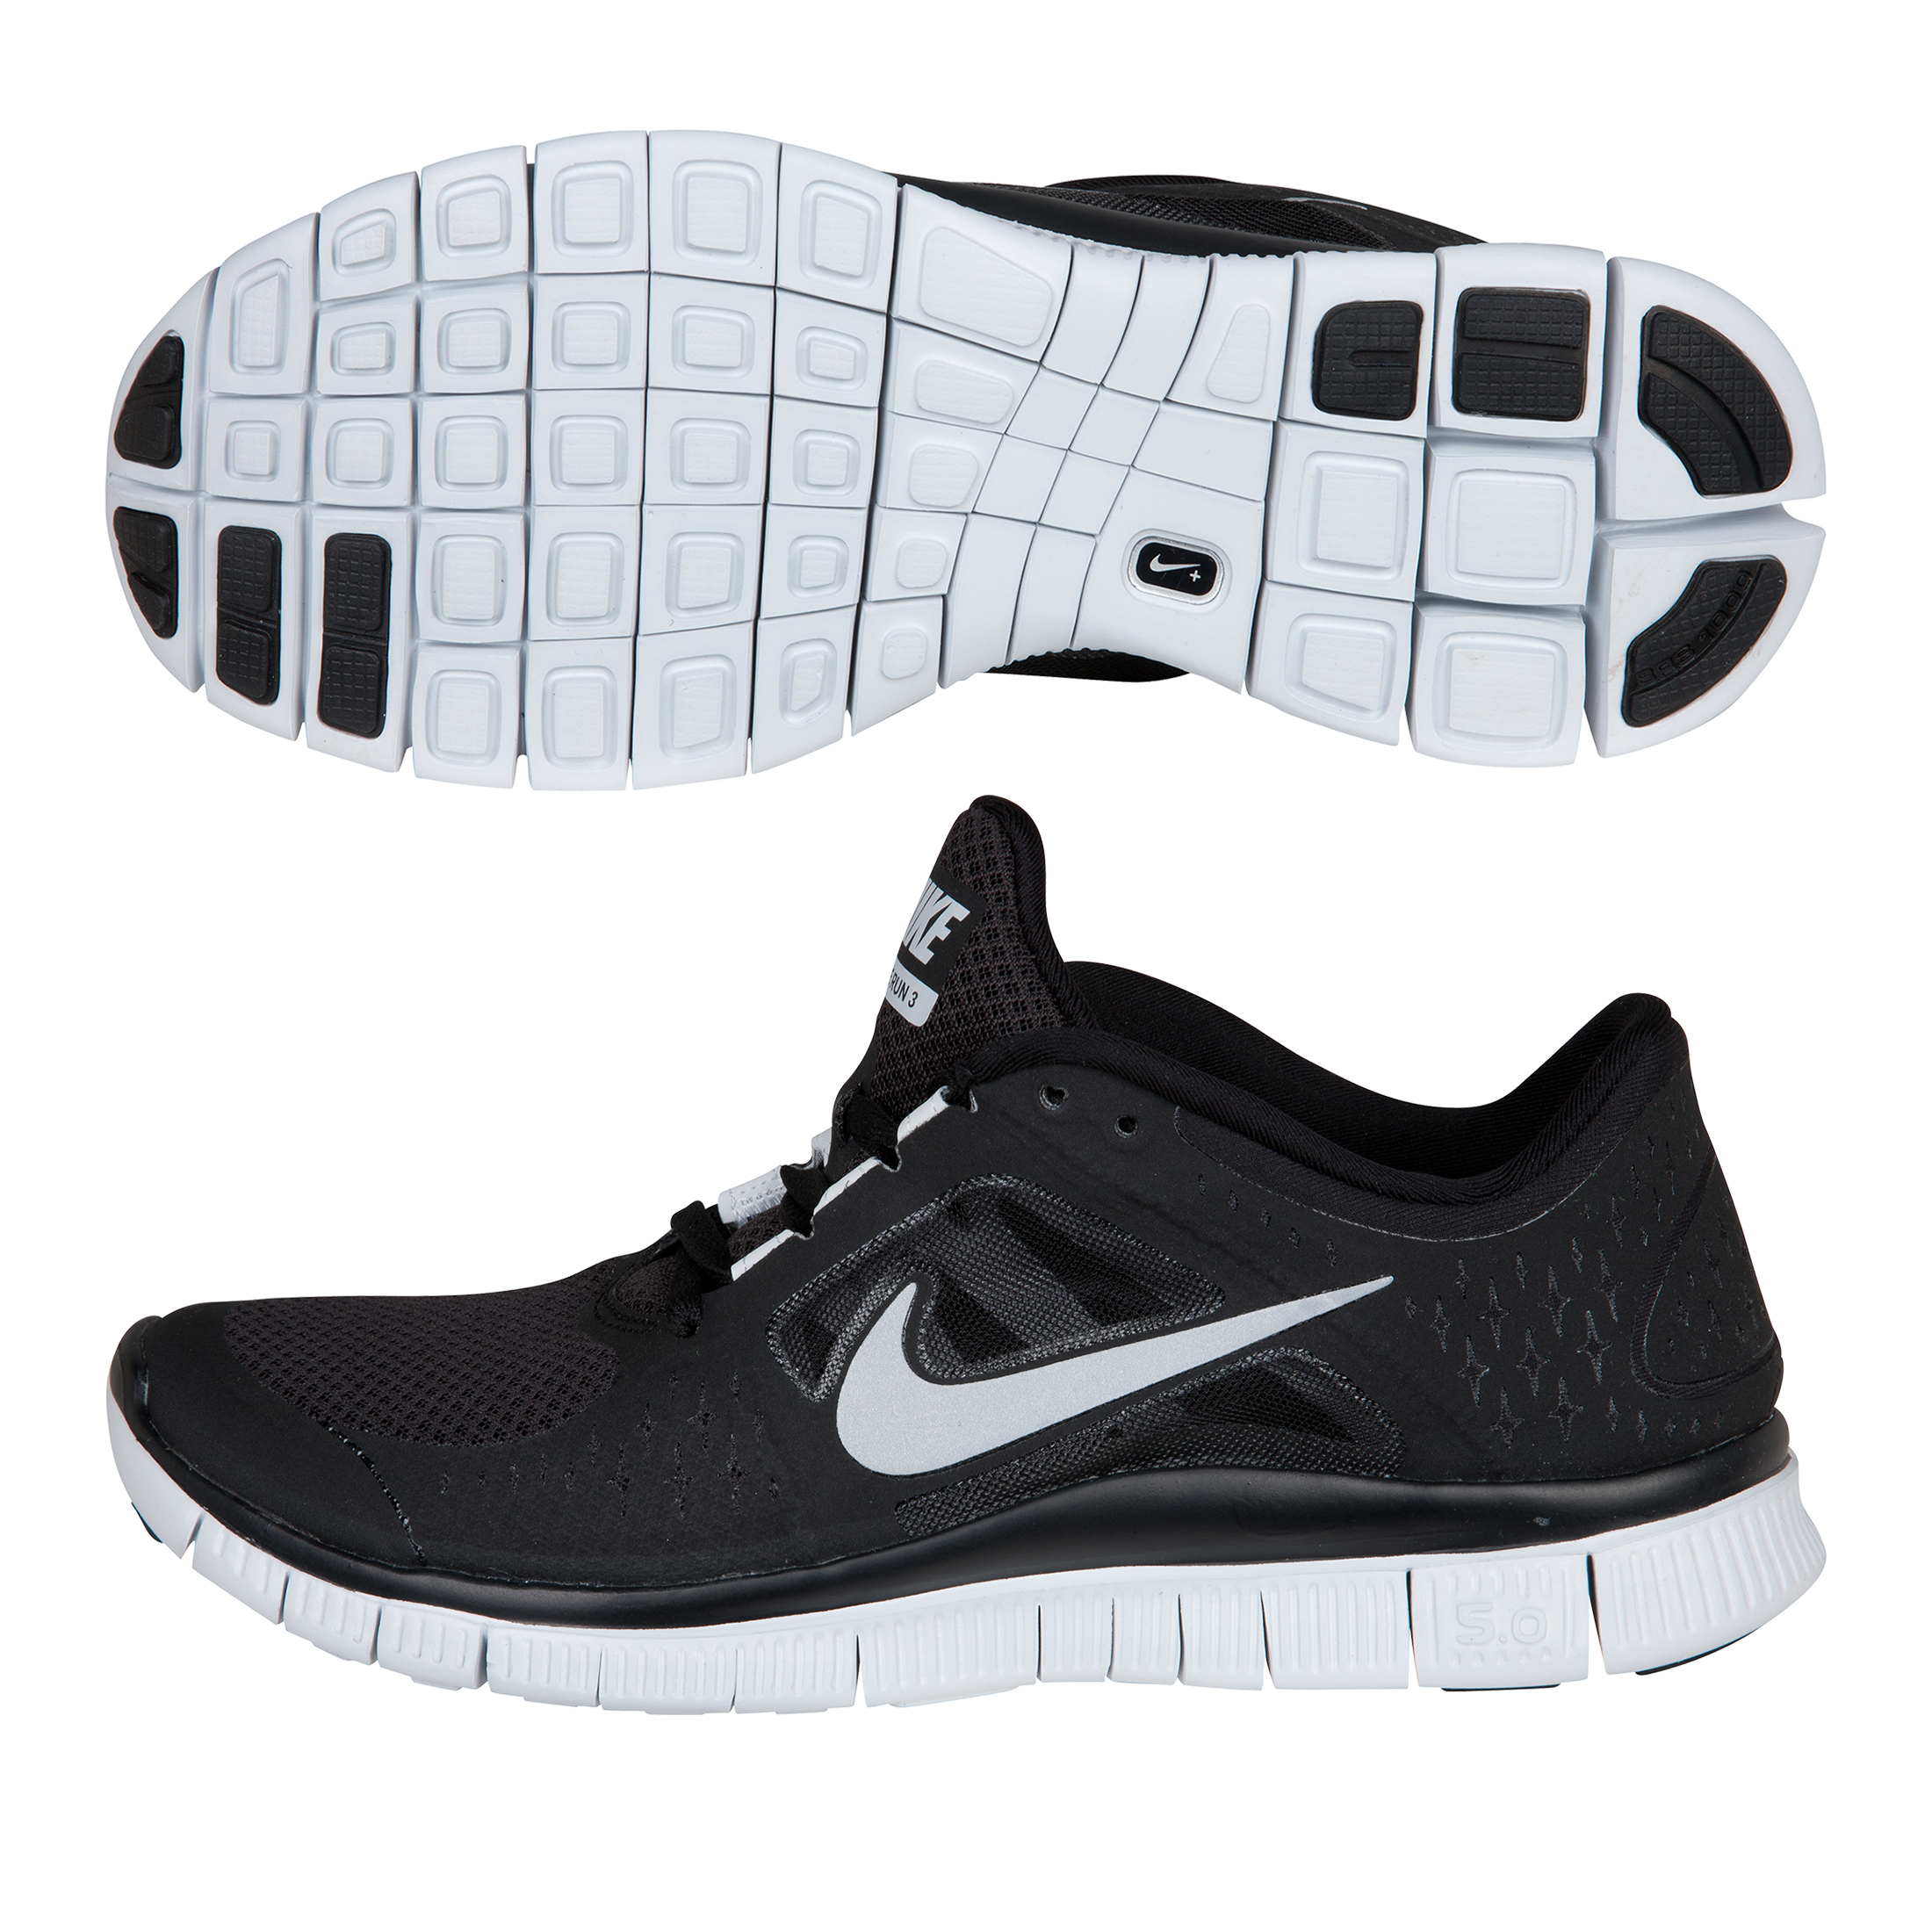 Nike Free Run+ 3 Barefoot Trainer - Black/Silver